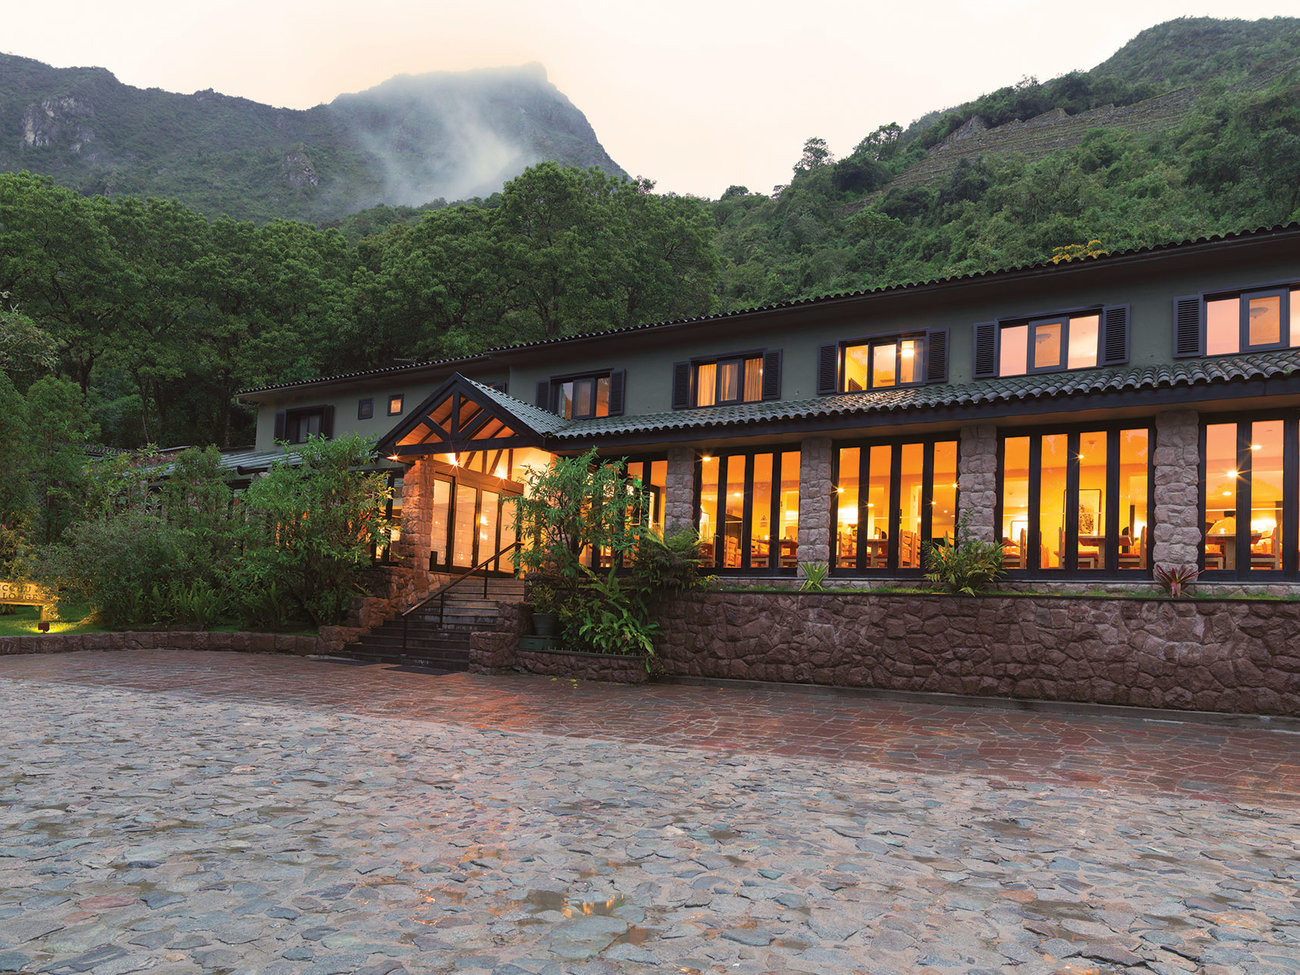 Belmond Sanctuary Lodge Machu Picchu Peru